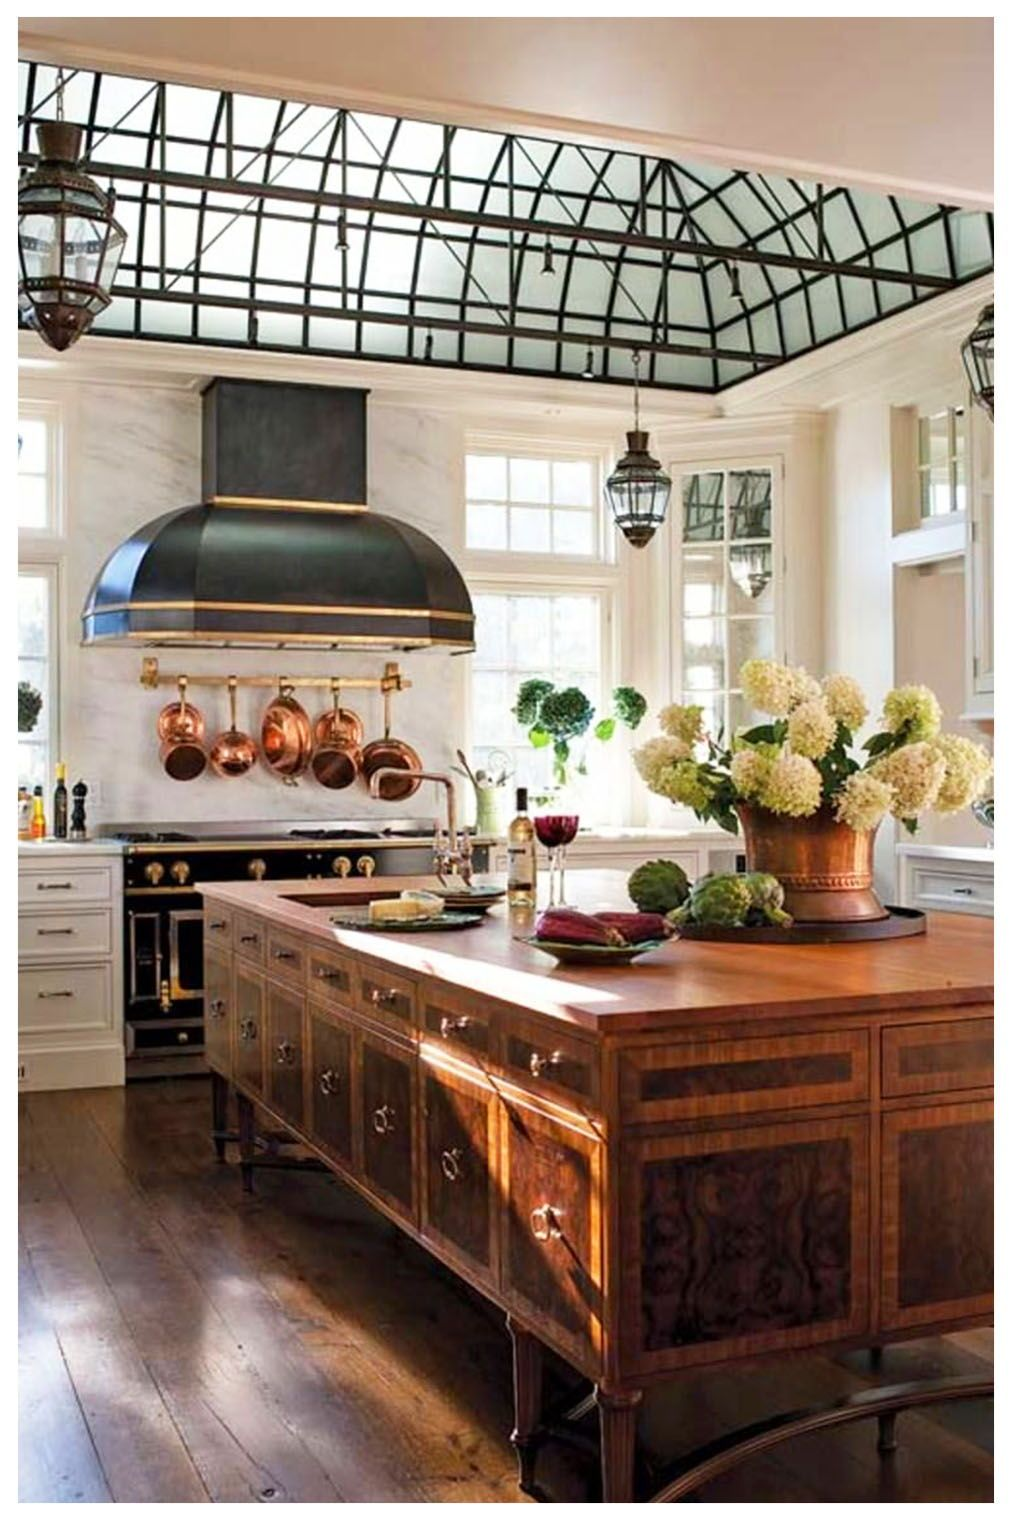 20+ Artsy Mediterranean Kitchen Design ( Photos Ideas )